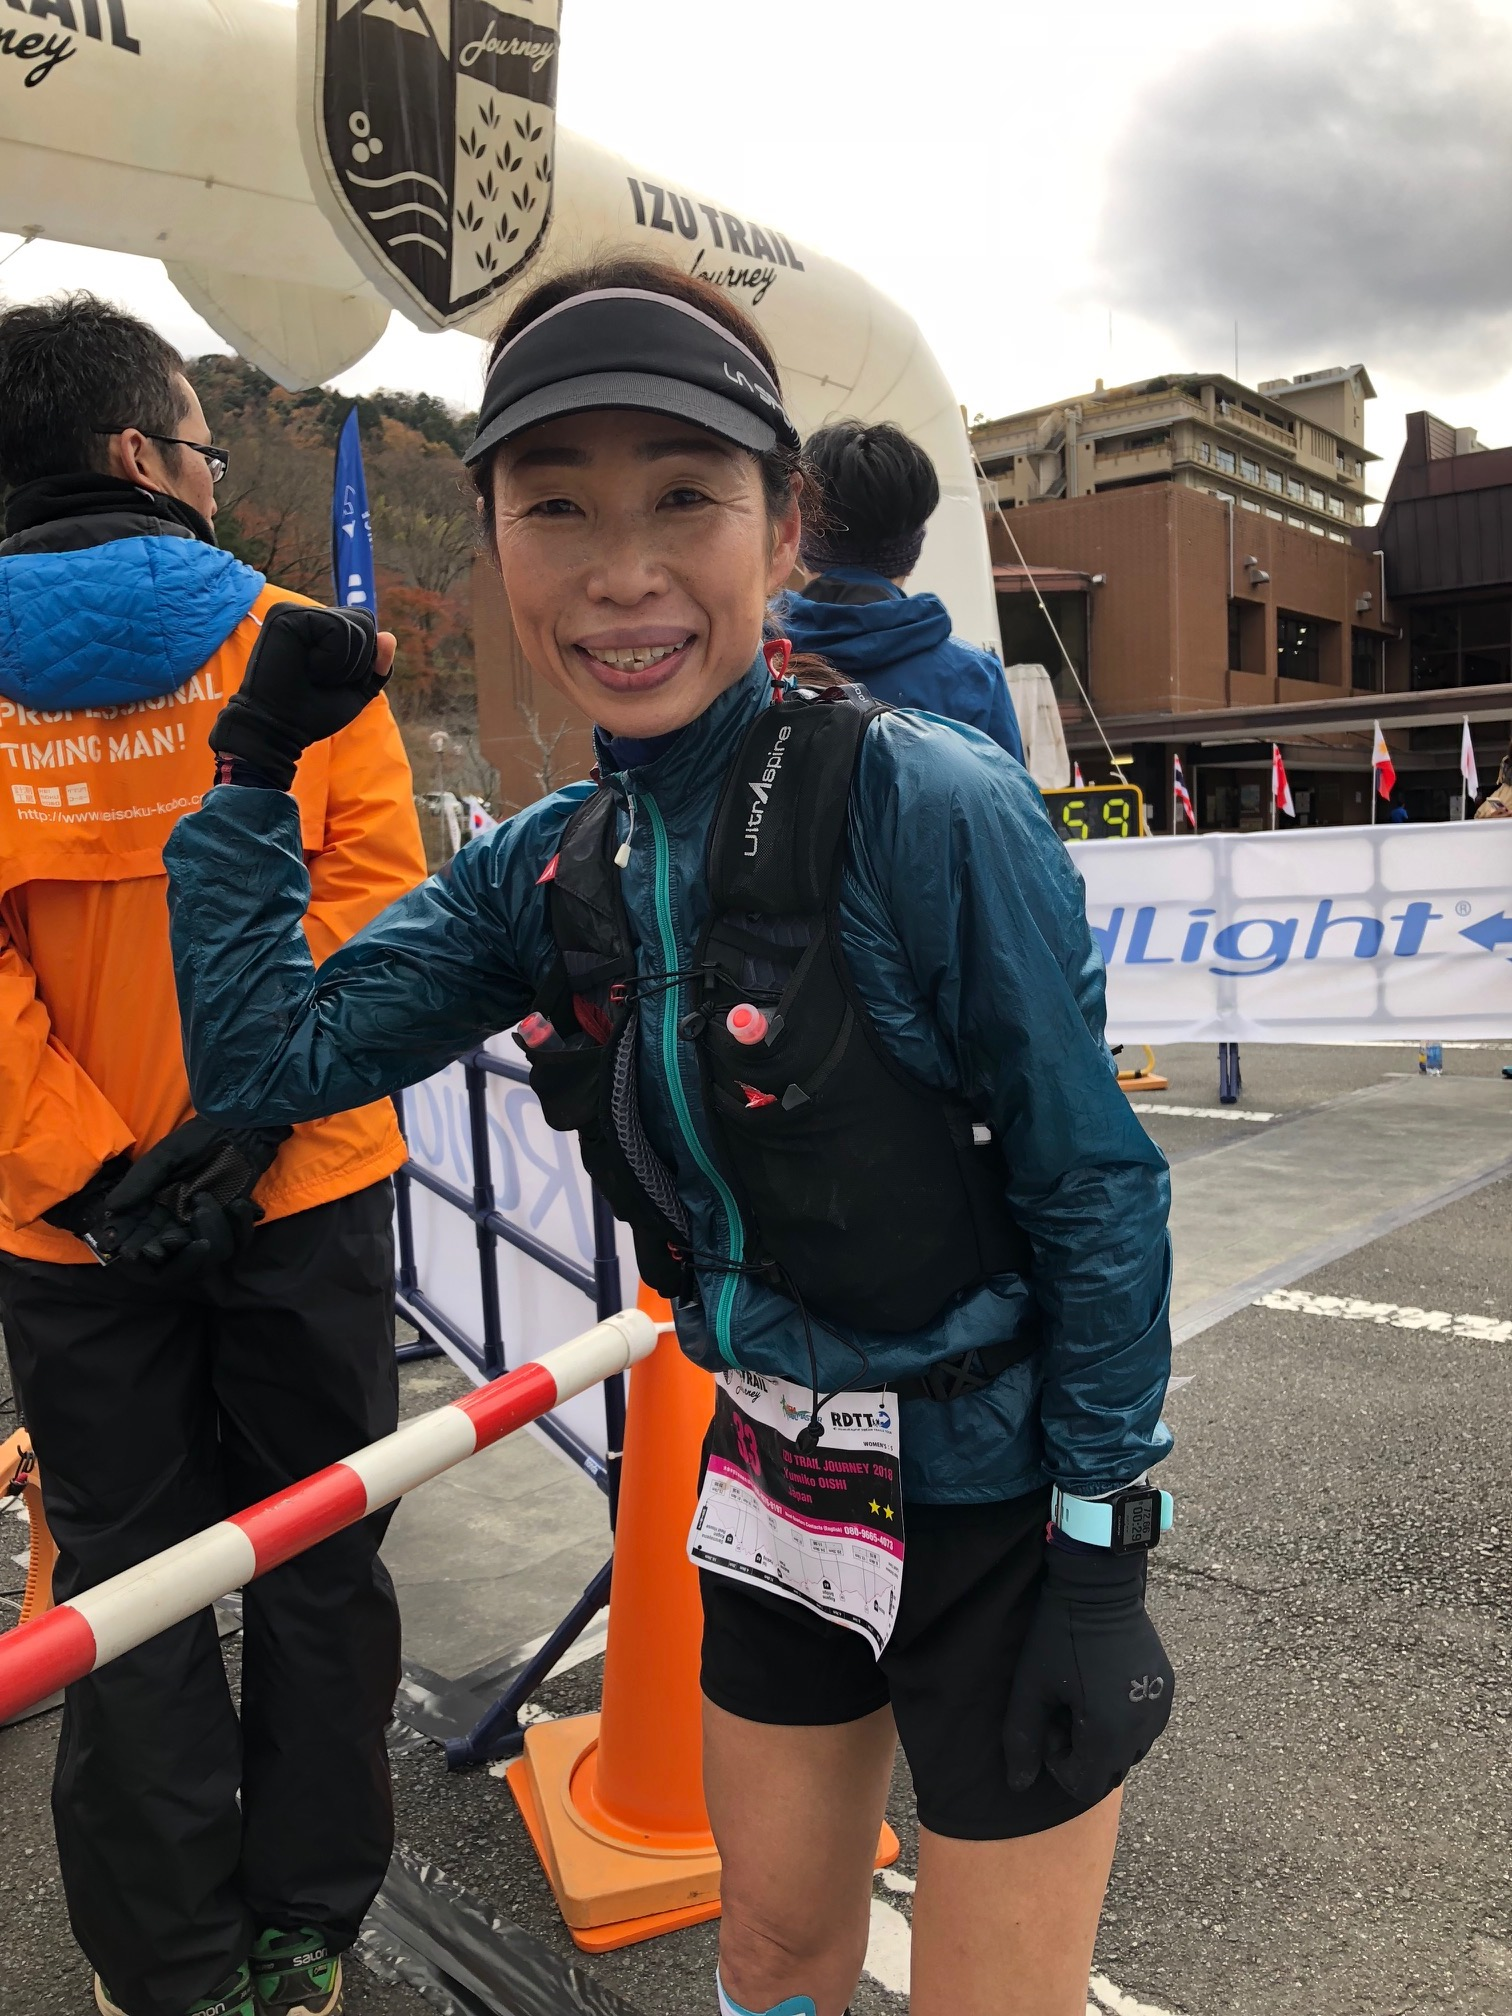 Yumiko Oichi won Izu Trail for a third time, but after long injury troubles, this was special